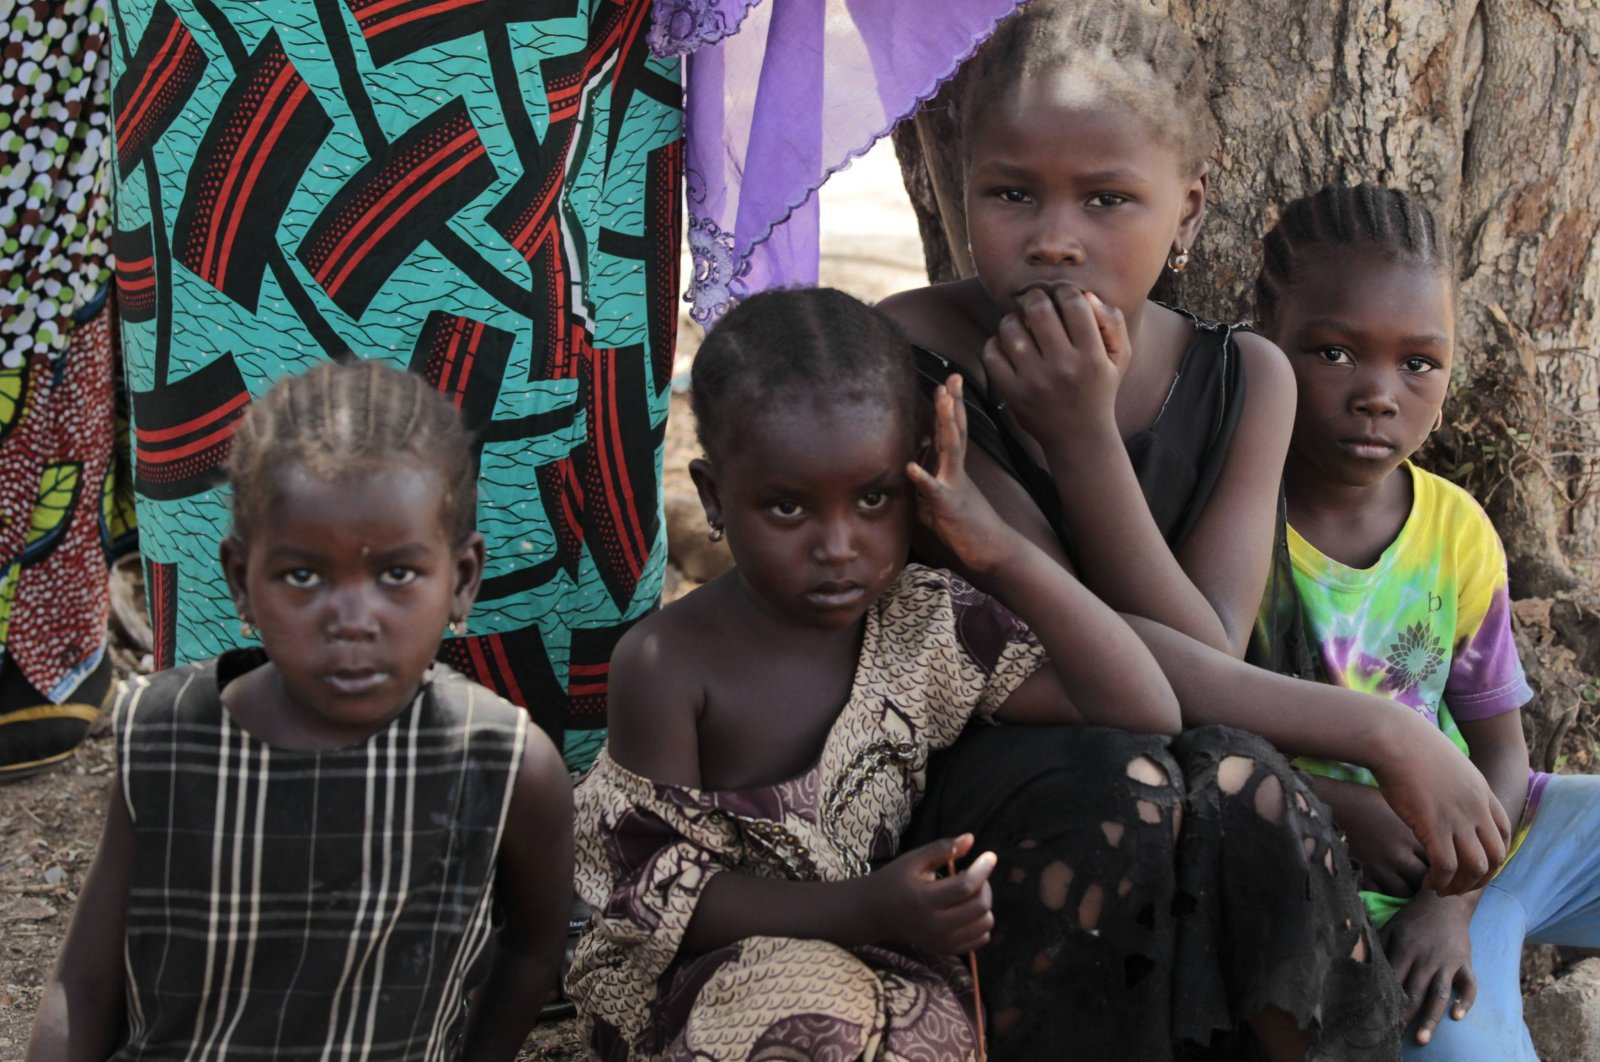 Children are seen at a camp for displaced people fleeing violence from Gulak, a border town in the north of Adamawa state which was attacked by Boko Haram militants in September 2014, Jan. 31, 2015. (Reuters Photo)